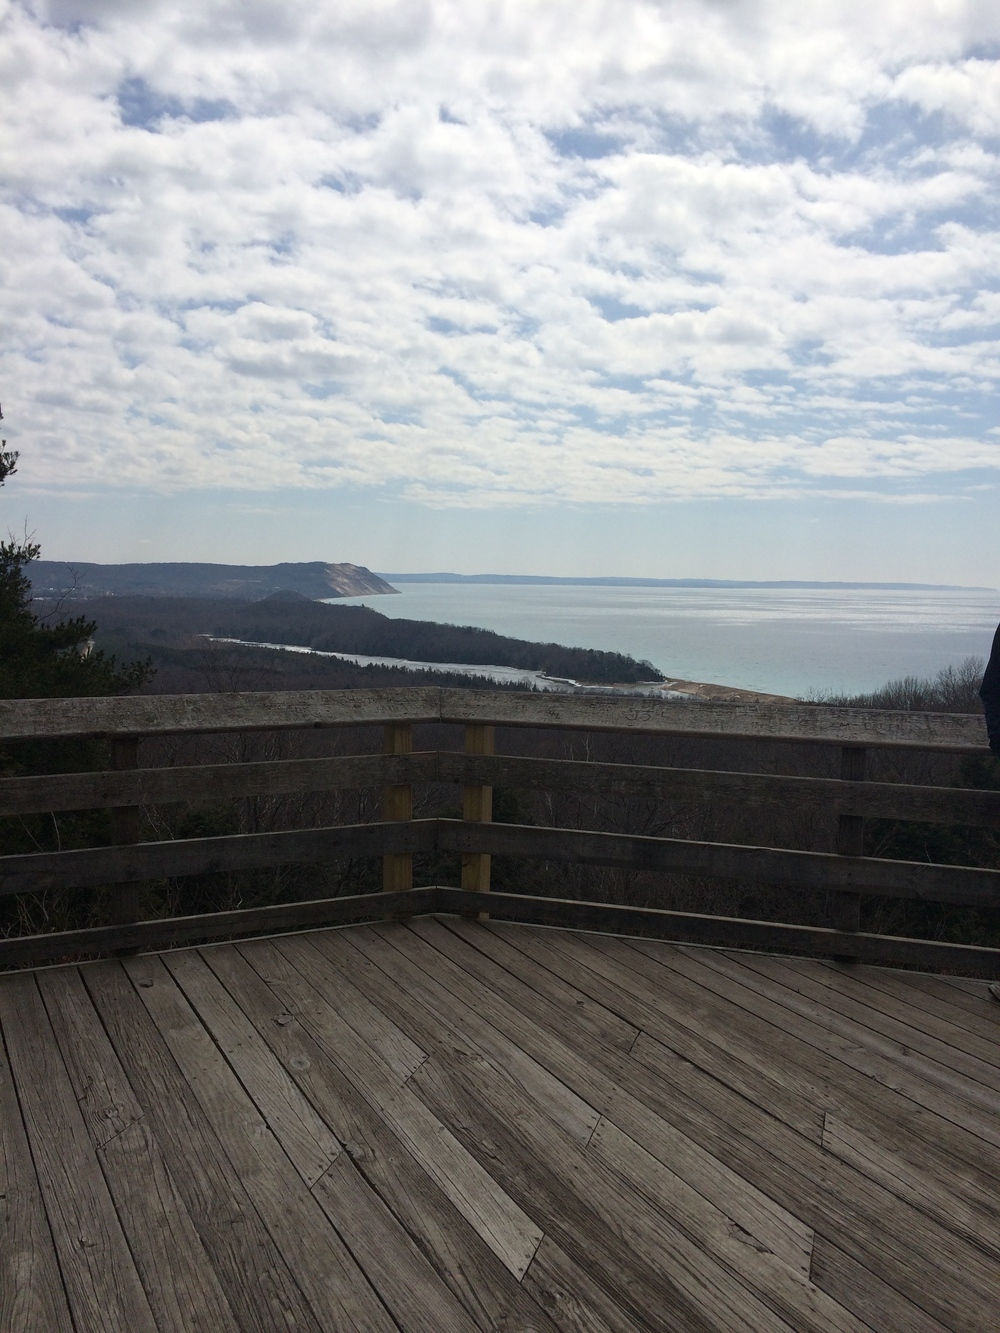 A shot of one of the Sleeping Bear Dune Drive Overlooks that Mike and I ran over Easter (very hilly!)